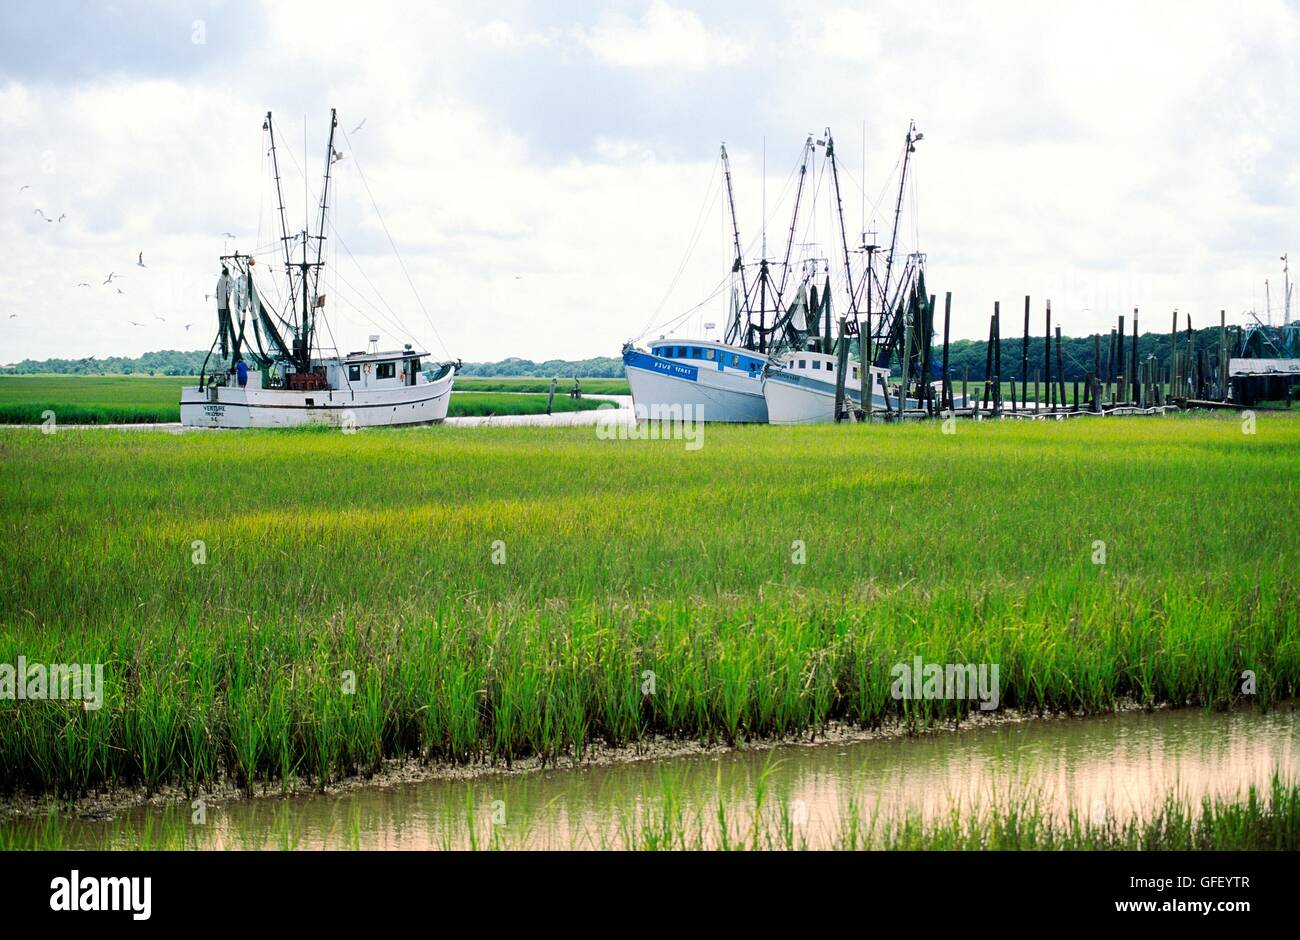 Shrimp boats navigate marshes around Hunting Island and St. Helena Island at approaches to Beaufort, South Carolina Stock Photo